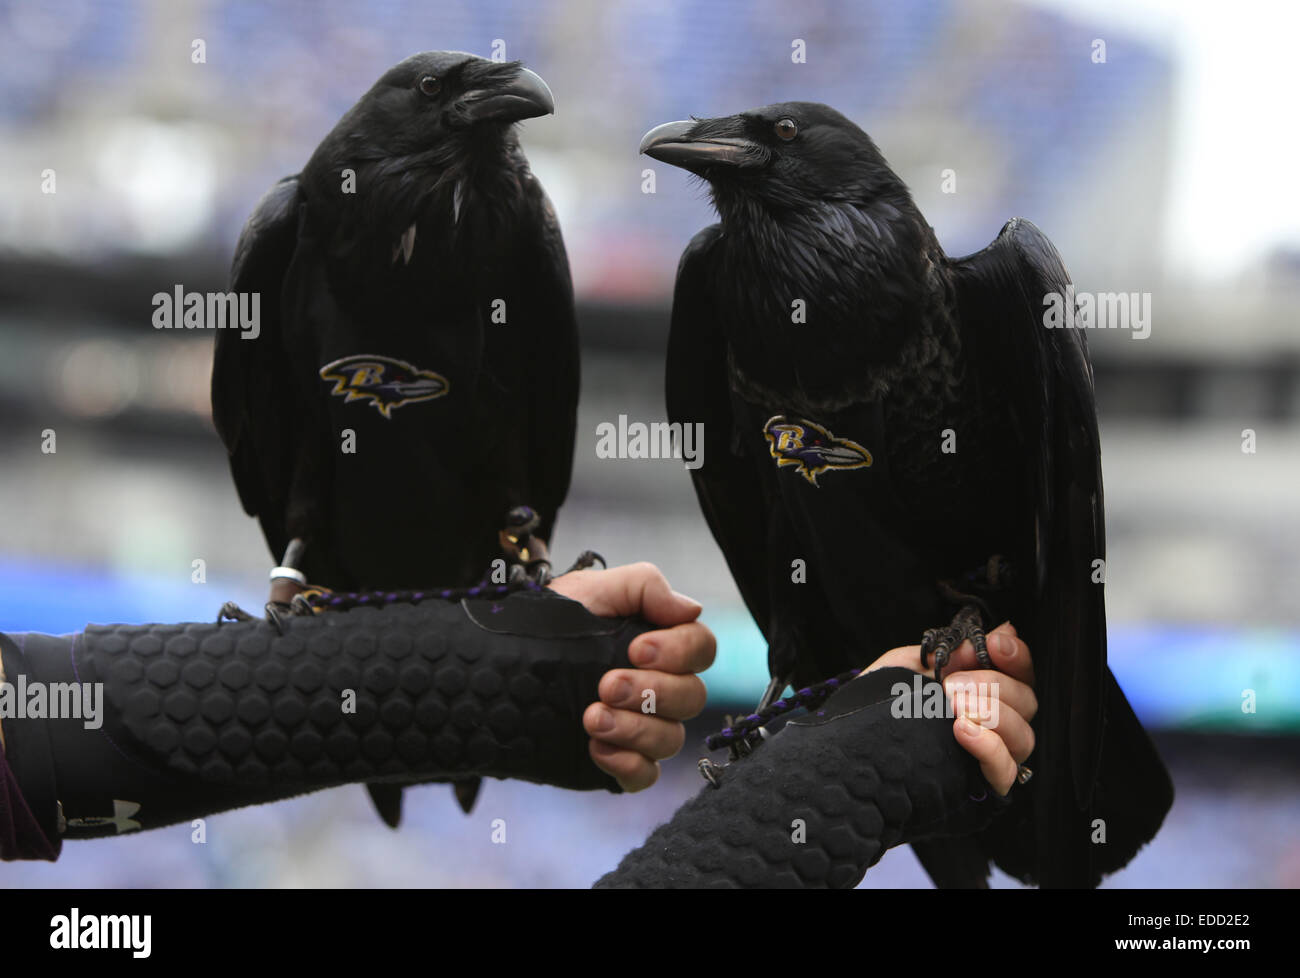 What is the baltimore ravens mascot name - Baltimore Maryland Usa 28th Dec 2014 Baltimore Ravens Mascots Rise